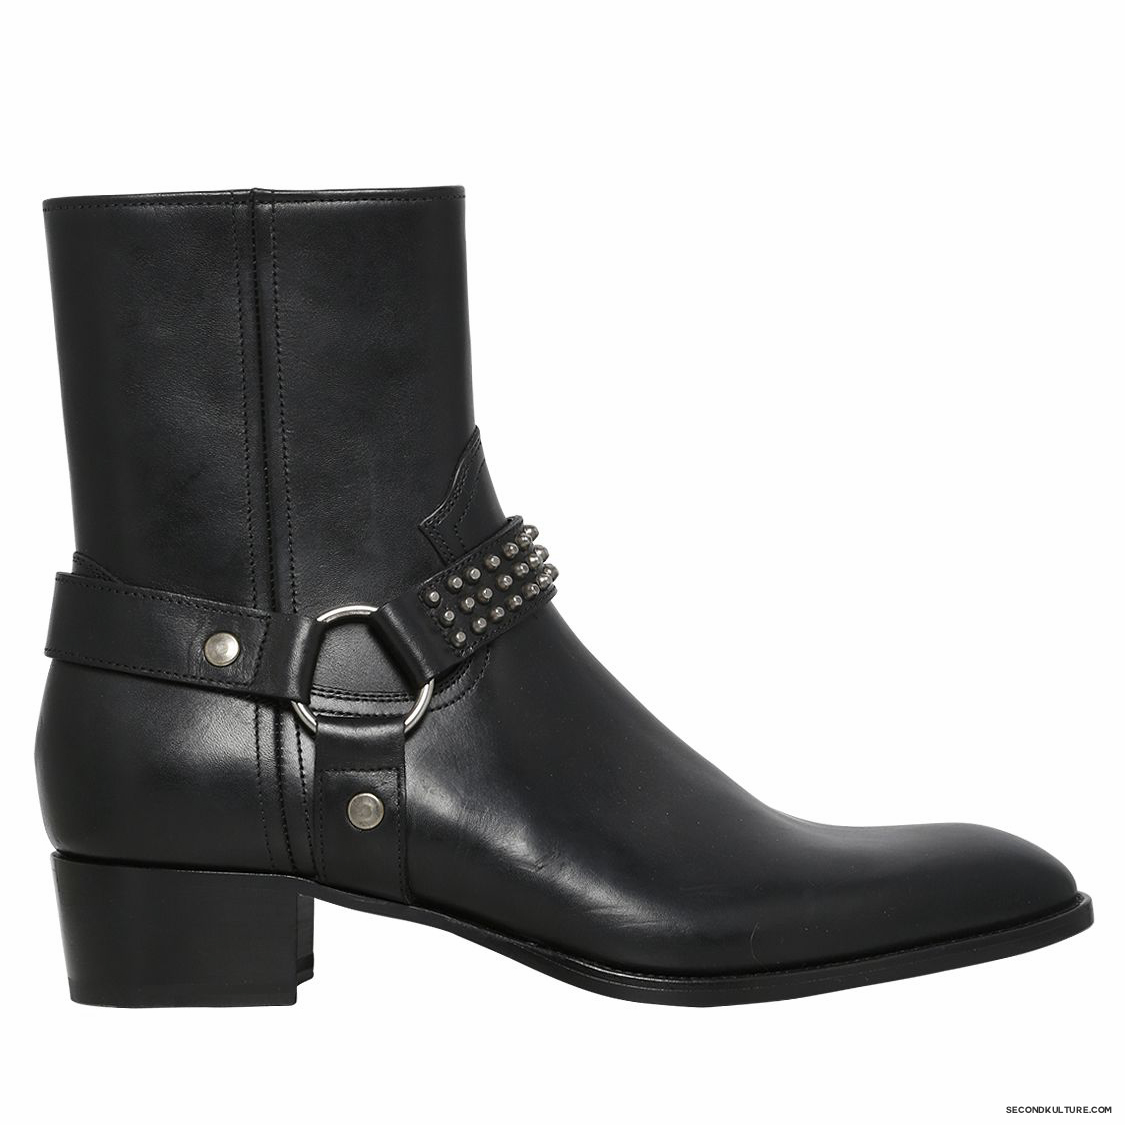 Saint-Laurent-40mm-Black-Wyatt-Studded-Harness-Leather-Ankle-Boots-Fall-Winter-2015-1